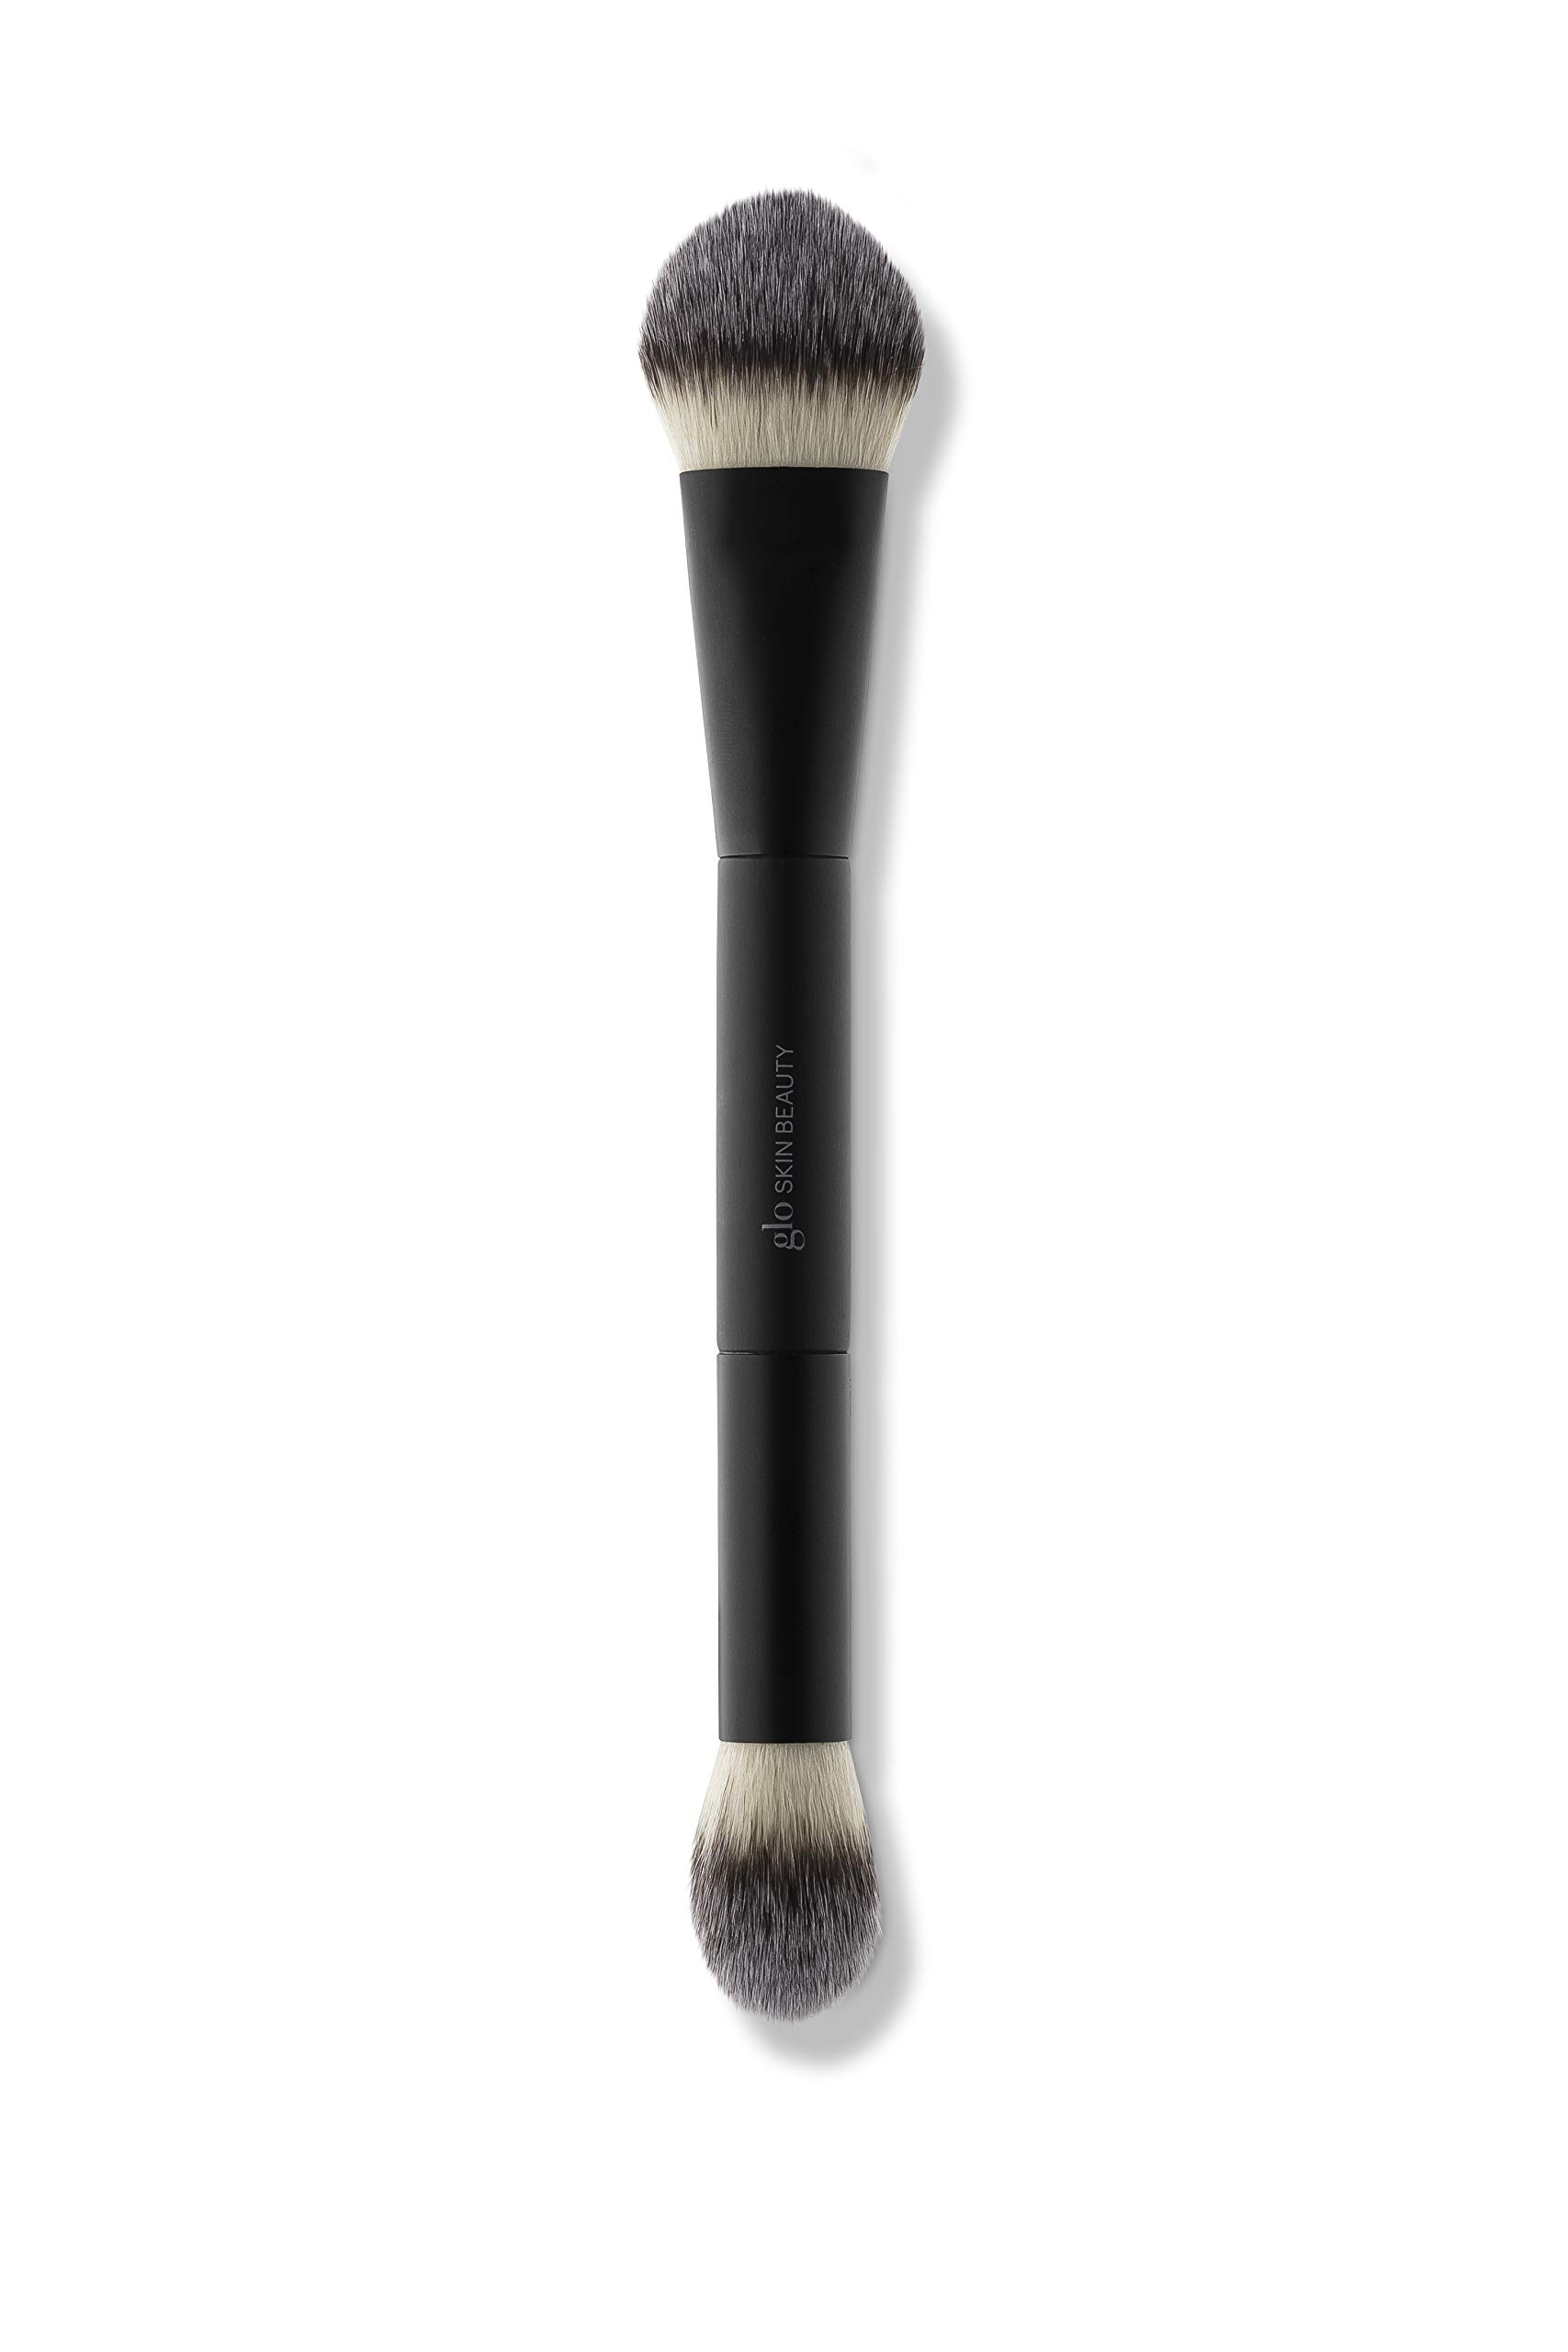 Glo Skin Beauty Contour And Highlighter Brush